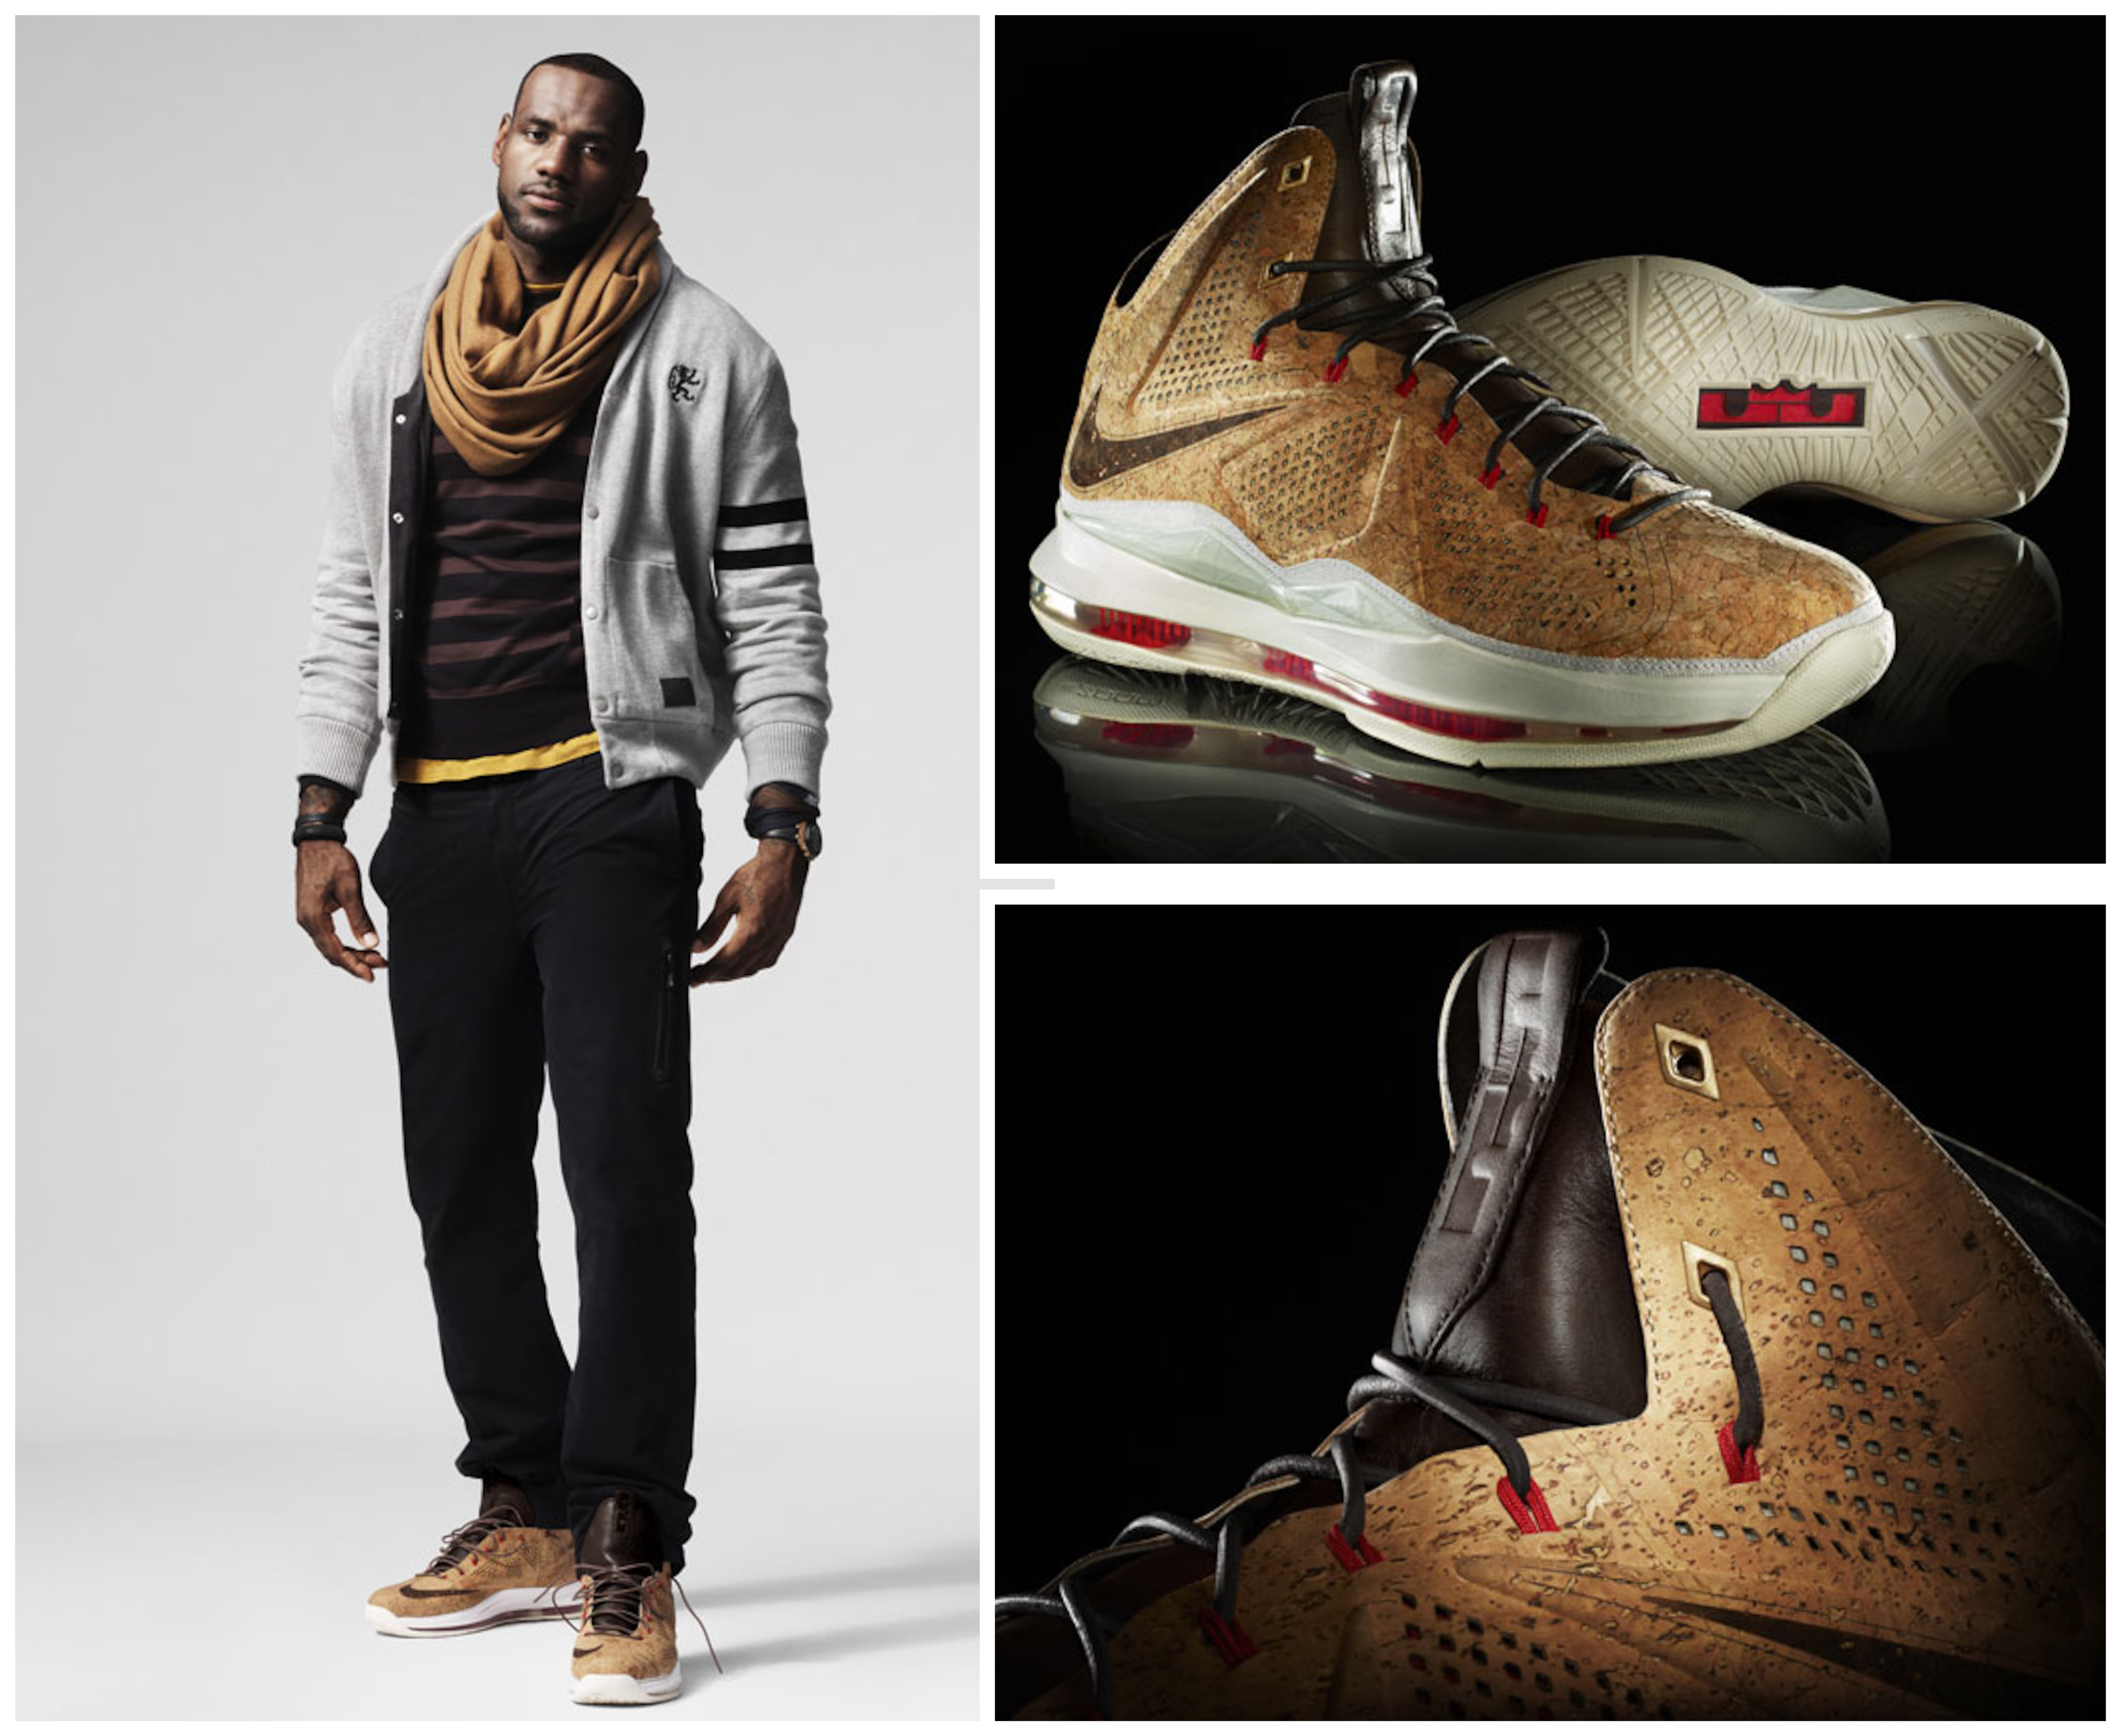 san francisco 48f54 4c1b7 Another Look at Nike LeBron X Cork That8217s Slated for December .. nike  sportswear lebron james diamond collection ...